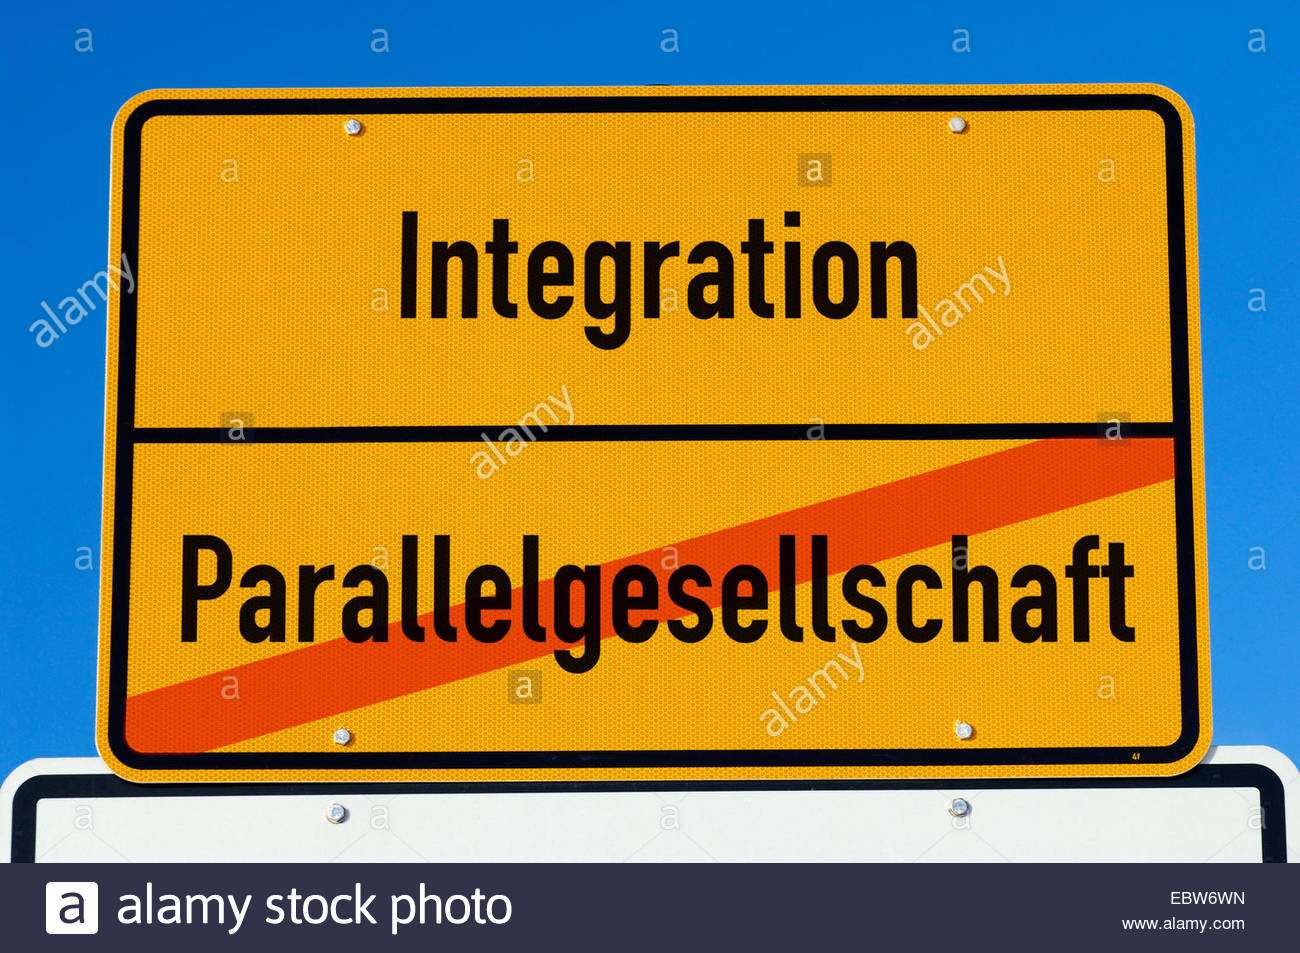 place name signs with titles integration and parallel society - Stock Image